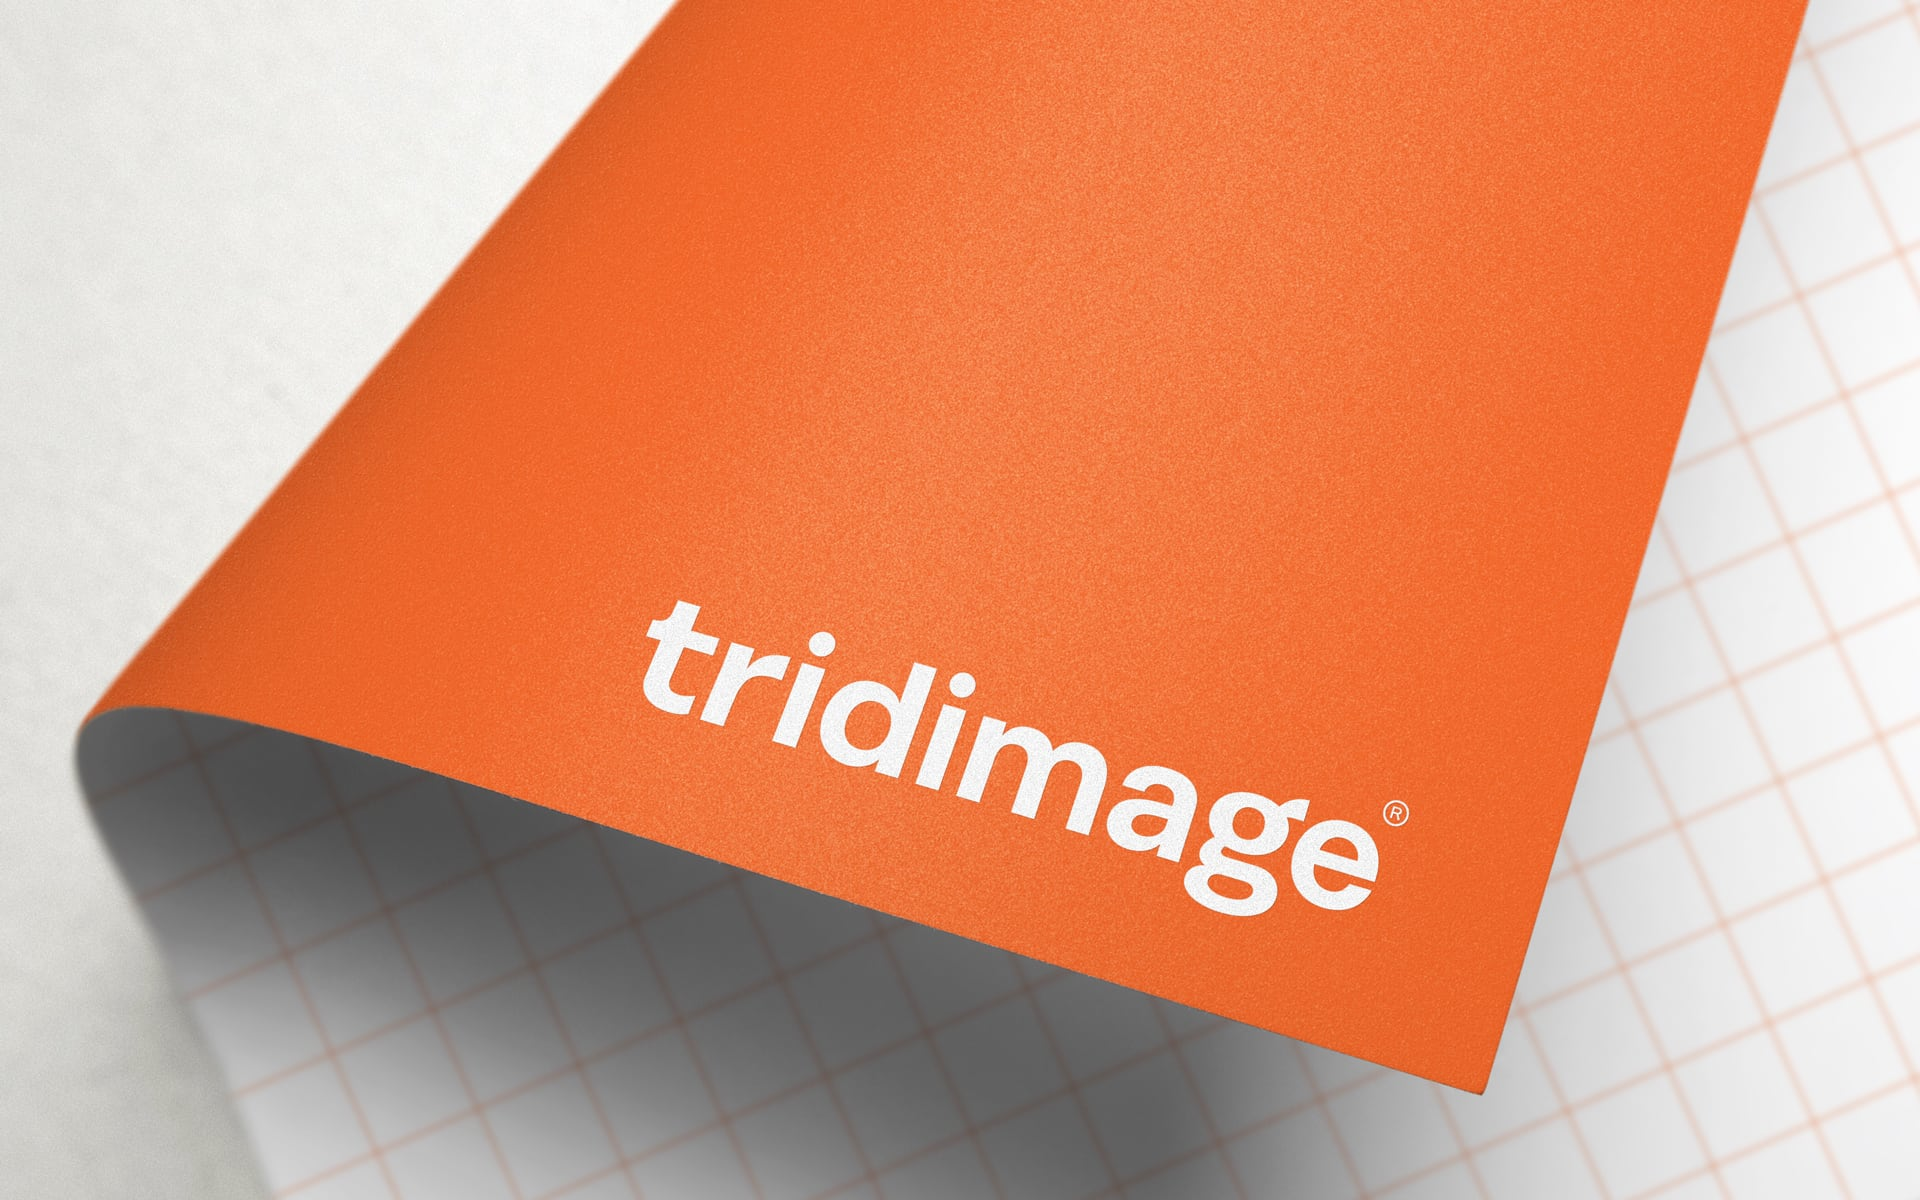 Tridimage. Name. Design Agency.